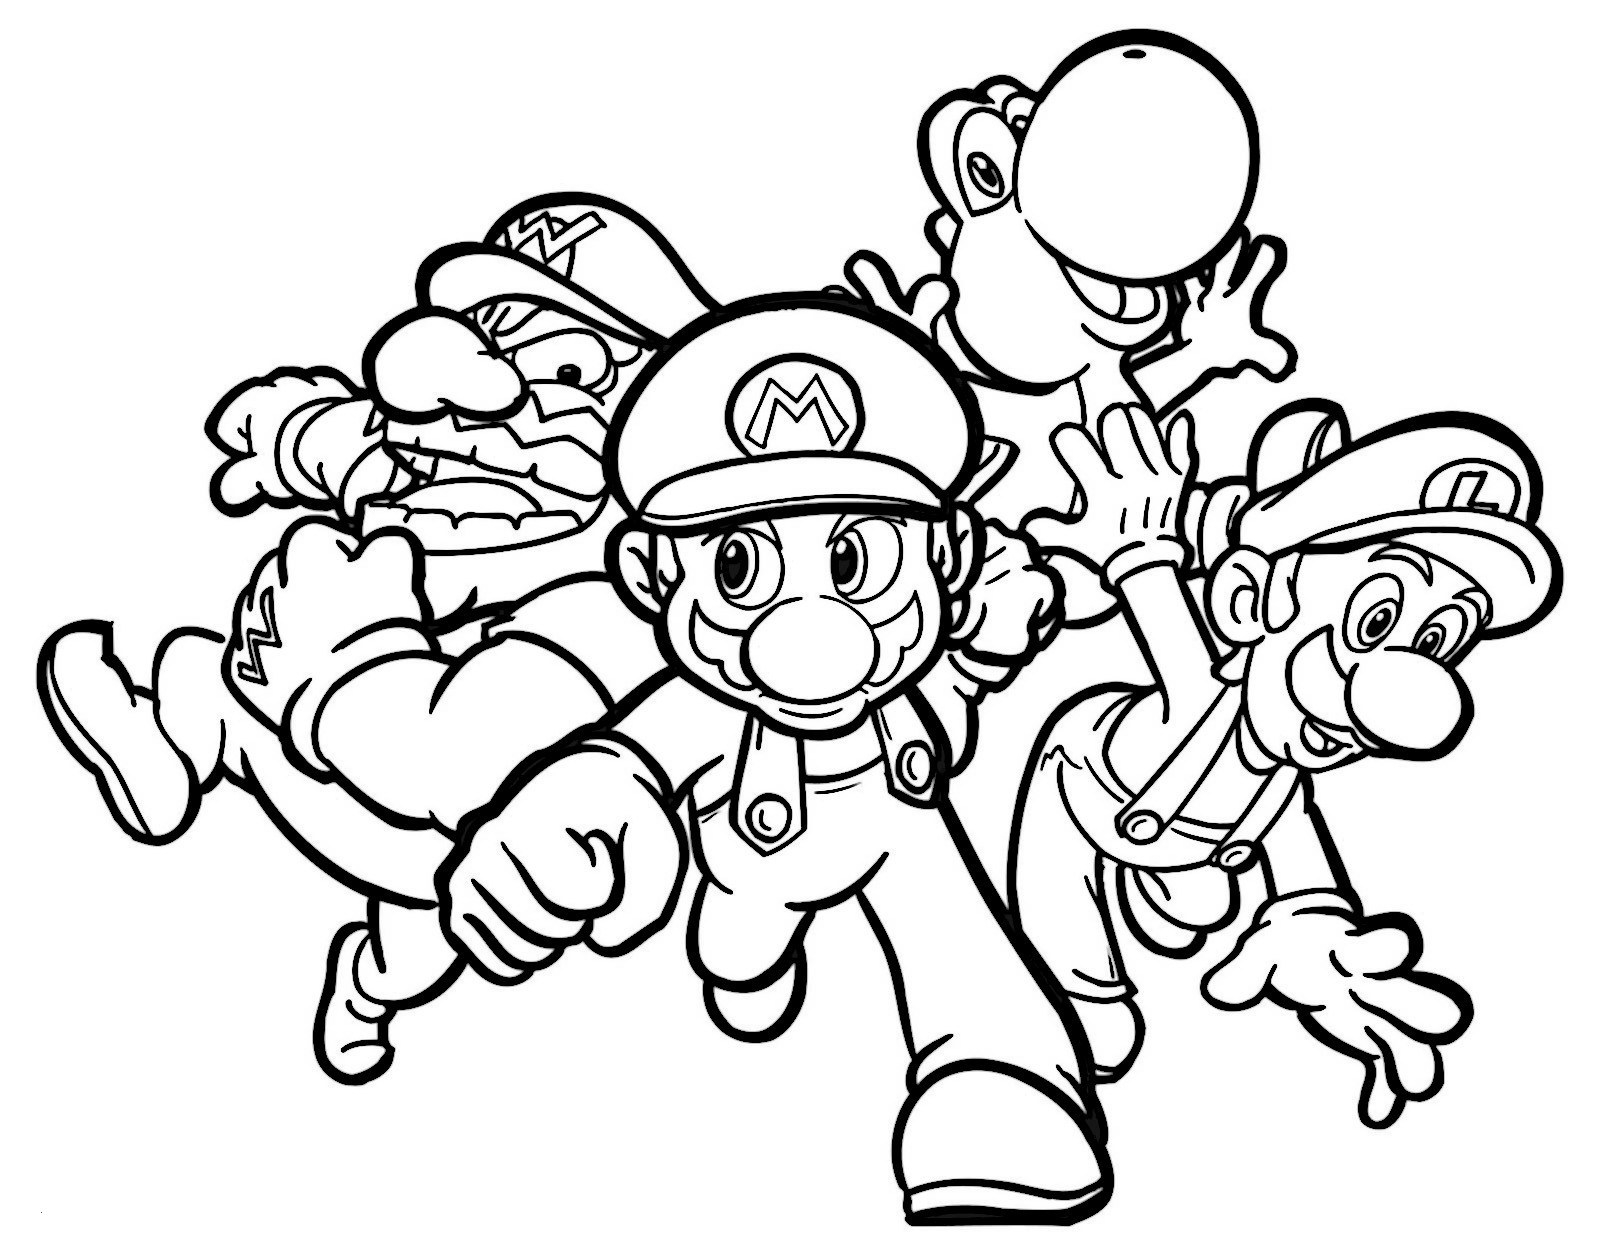 22 Cool Math Games Coloring Pages Gallery - Coloring Sheets